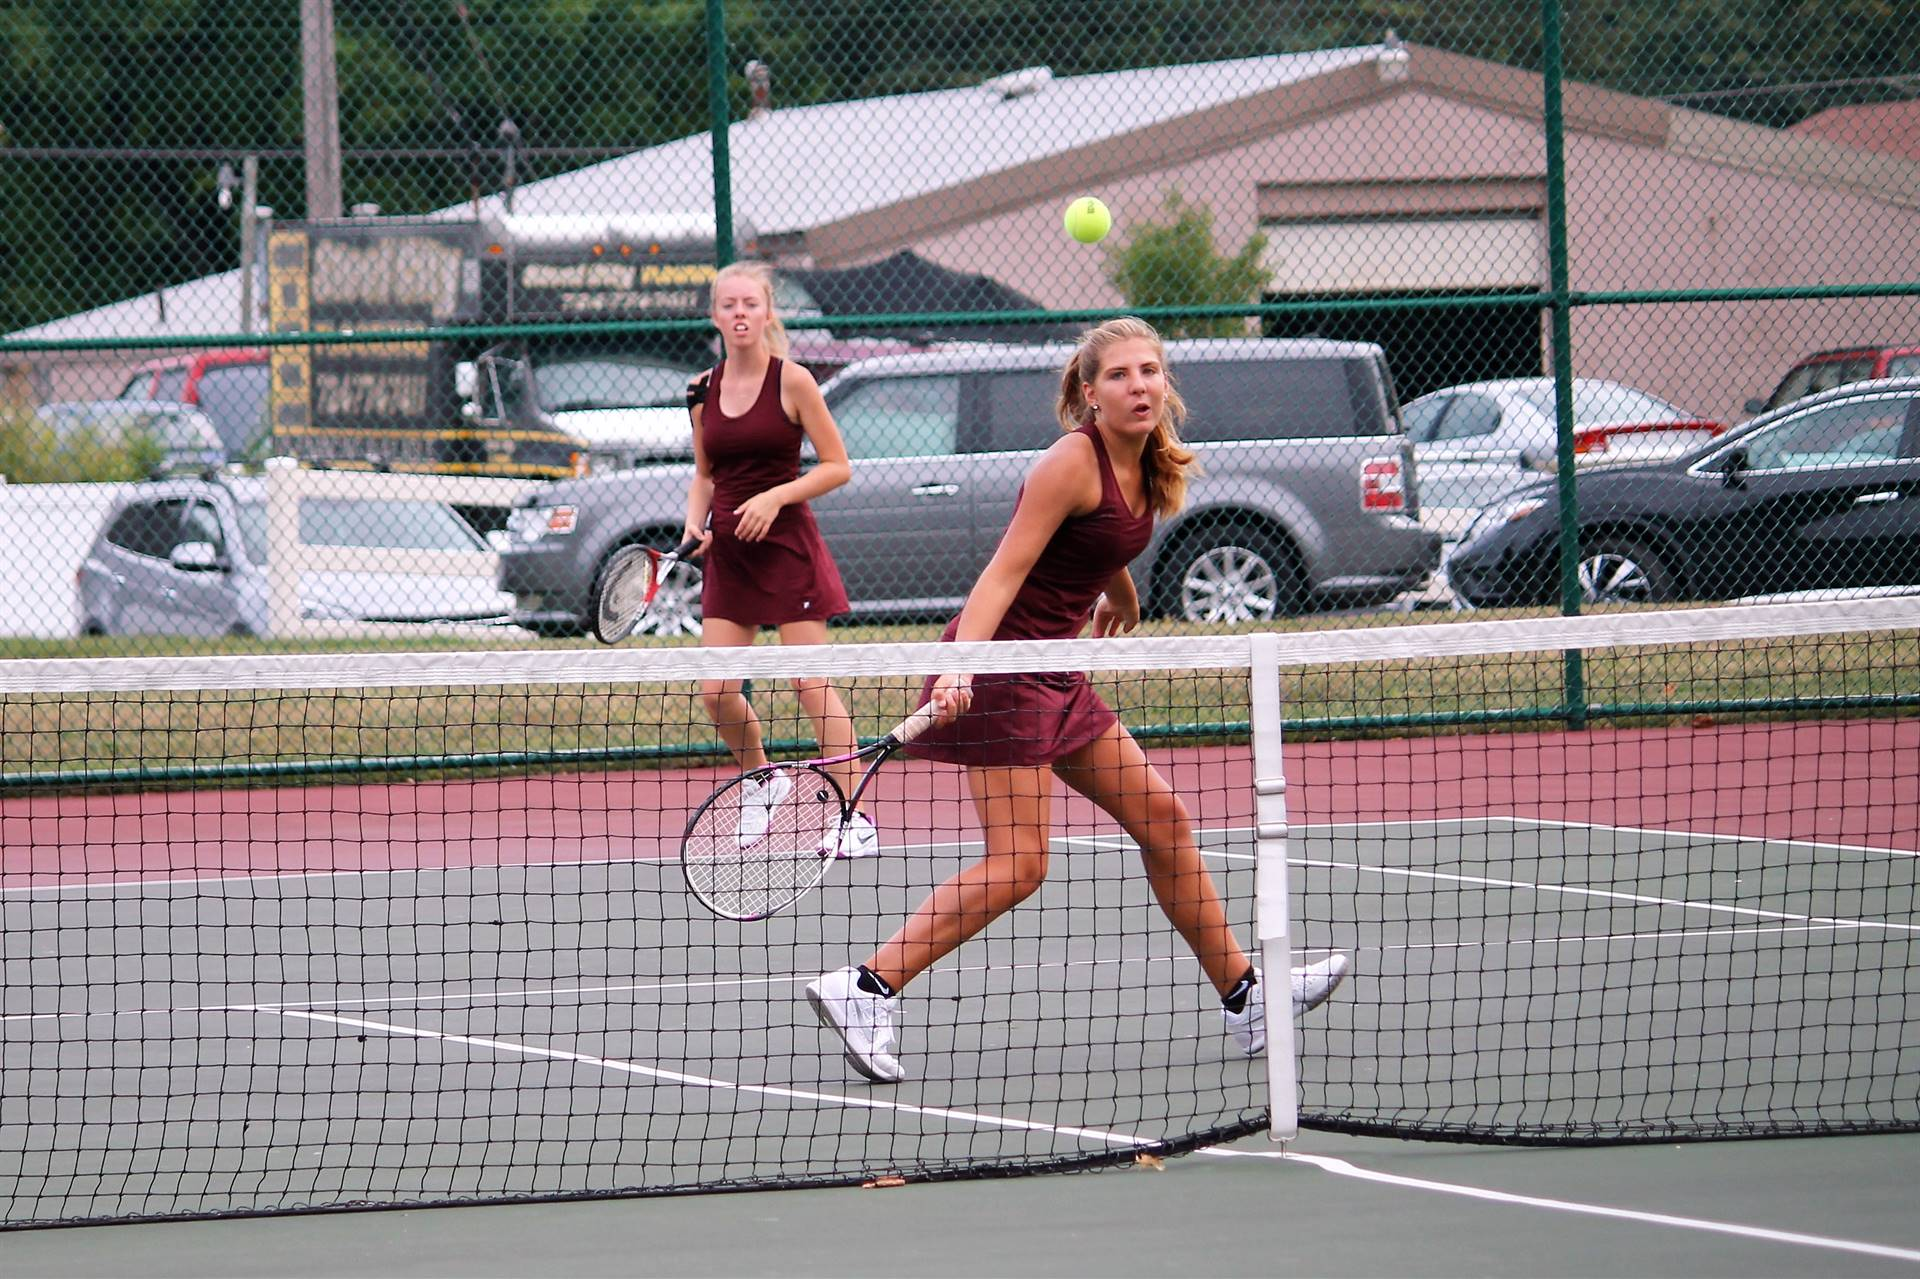 Varsity Tennis - Anna and Grace double teaming the opponent!